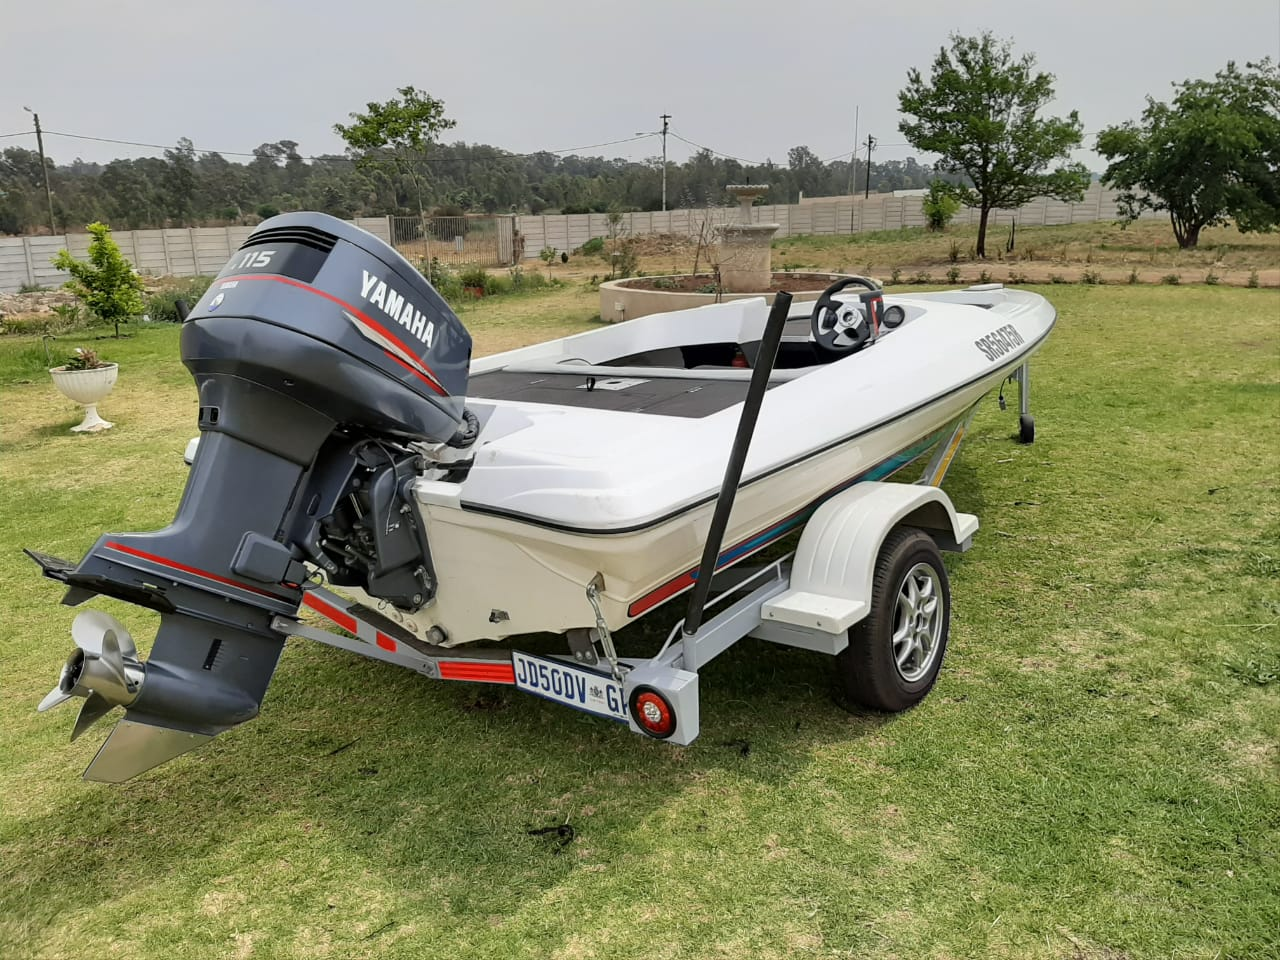 Bass Streaker 5.1 meter boat with Yamaha 115